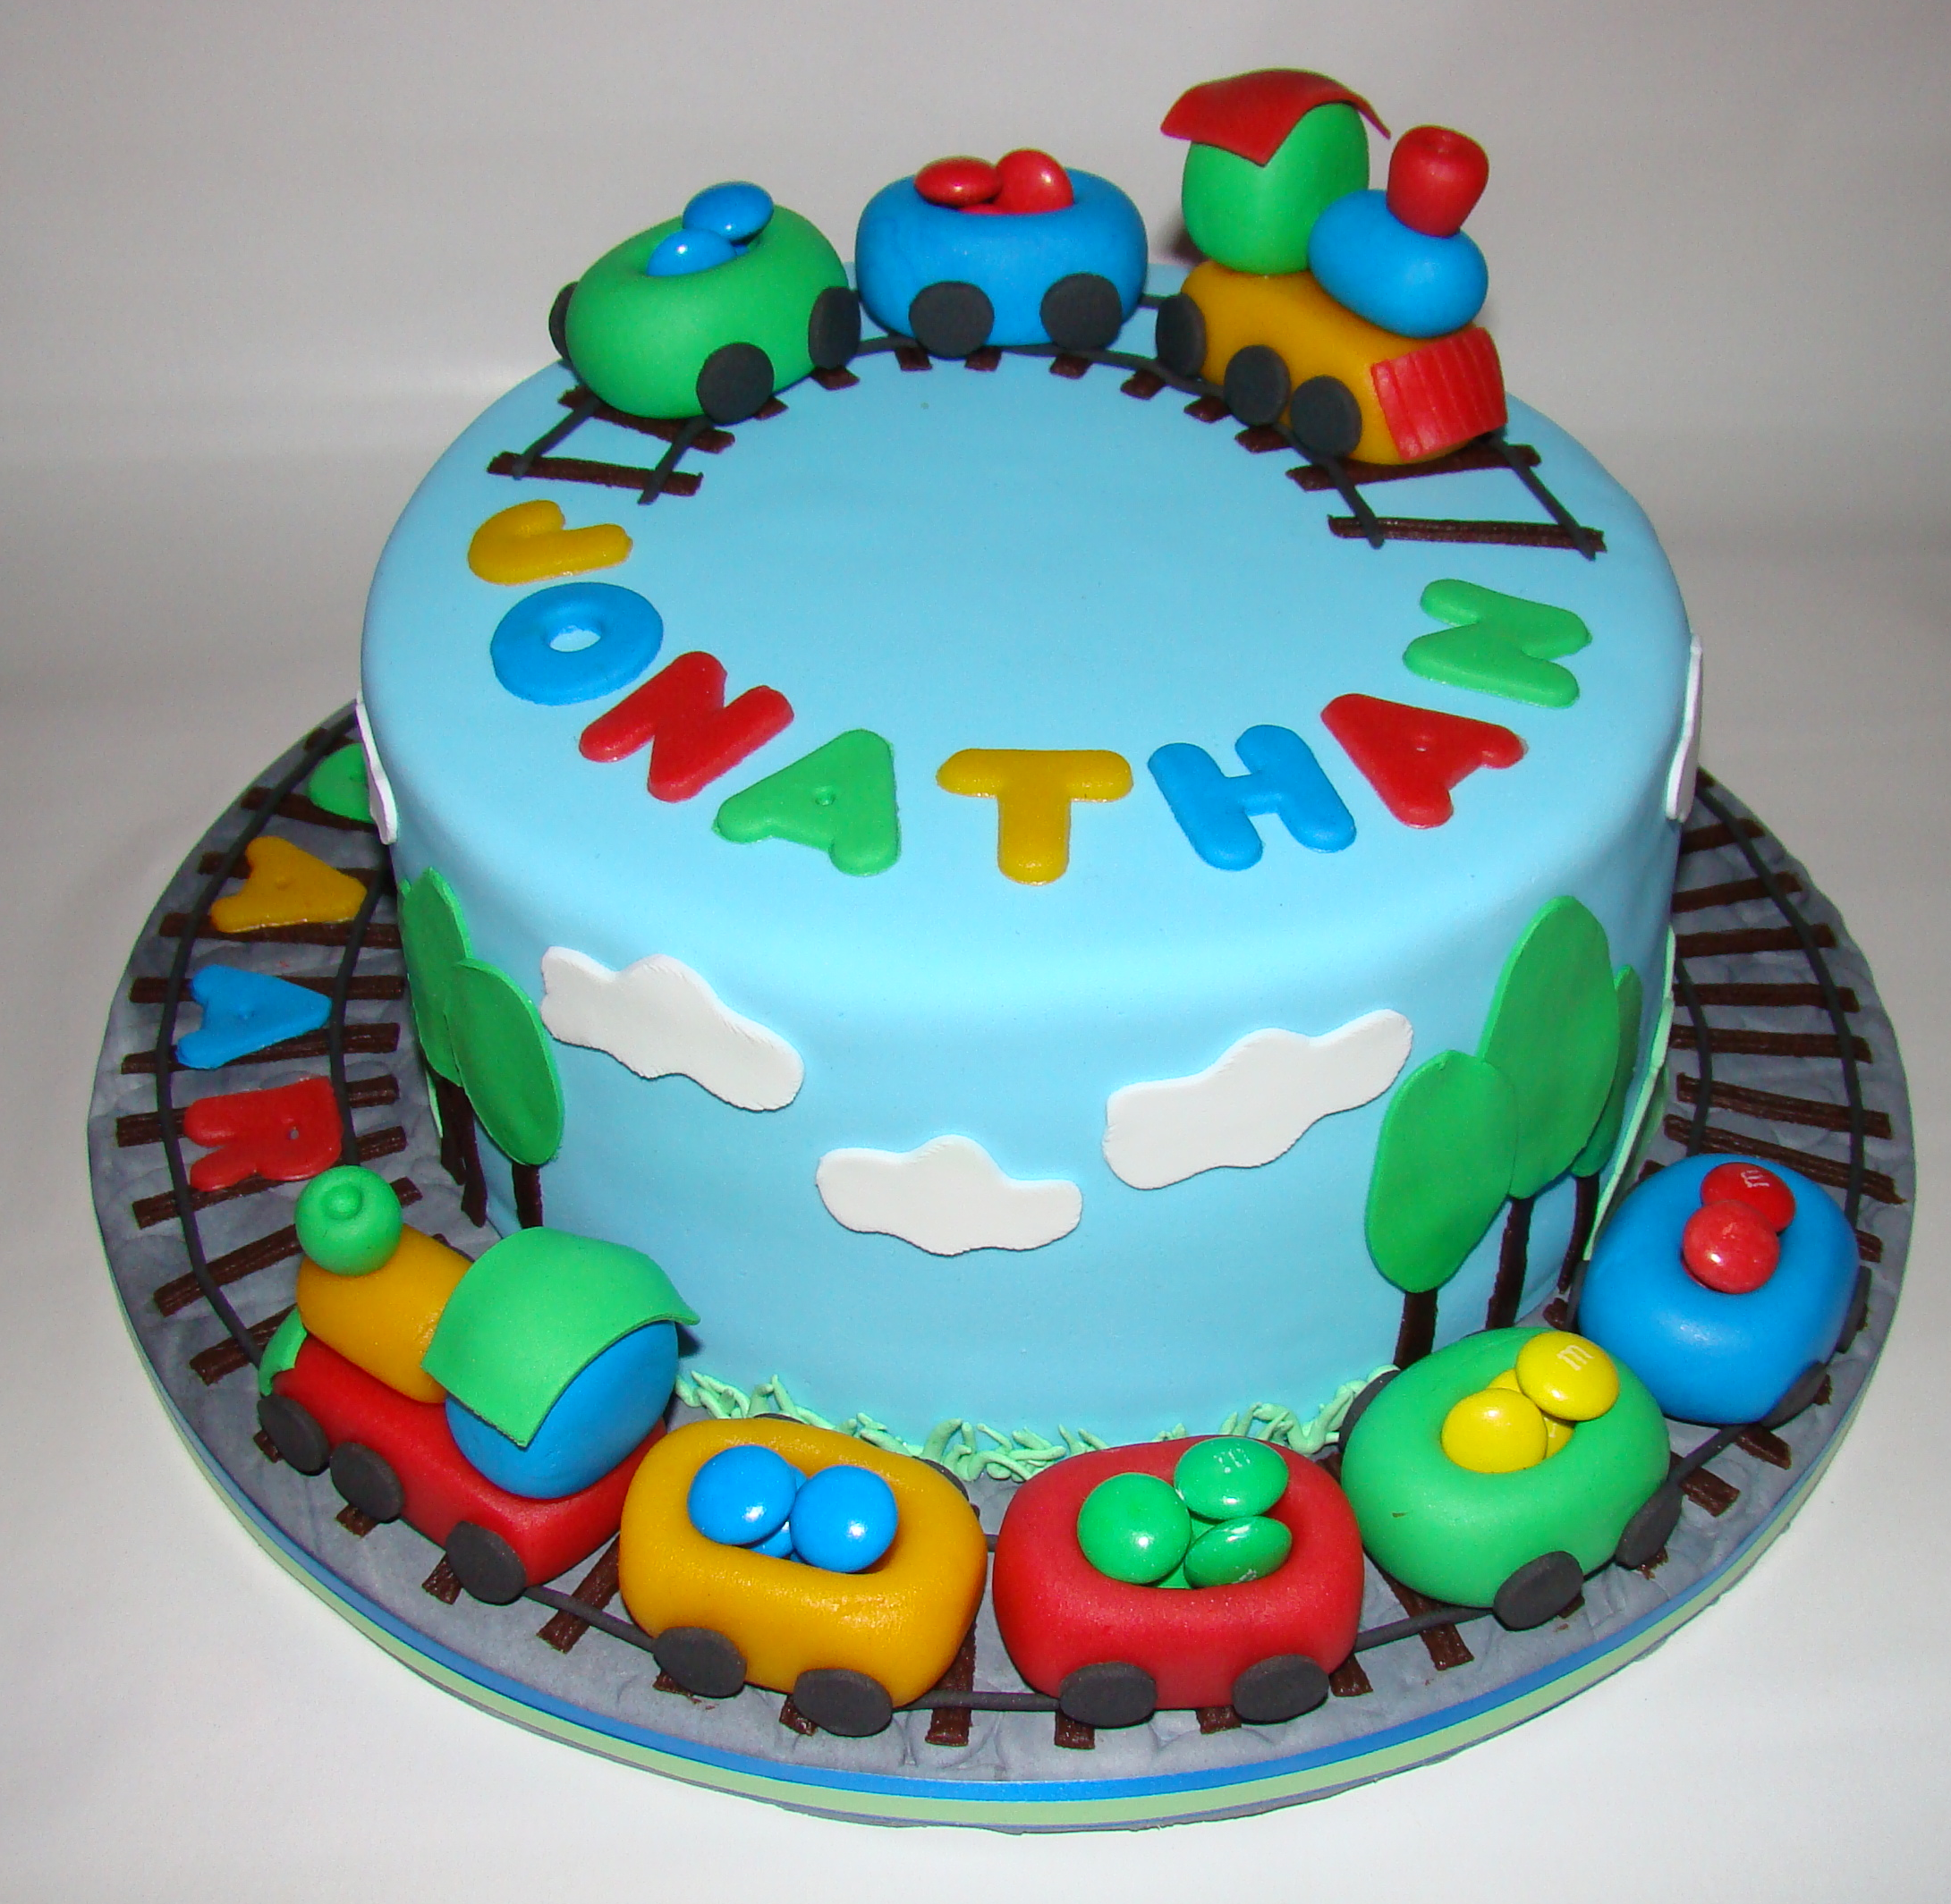 Cake Design For 5 Year Old Boy : train cakes for boys Traincake for a two years old boy ...